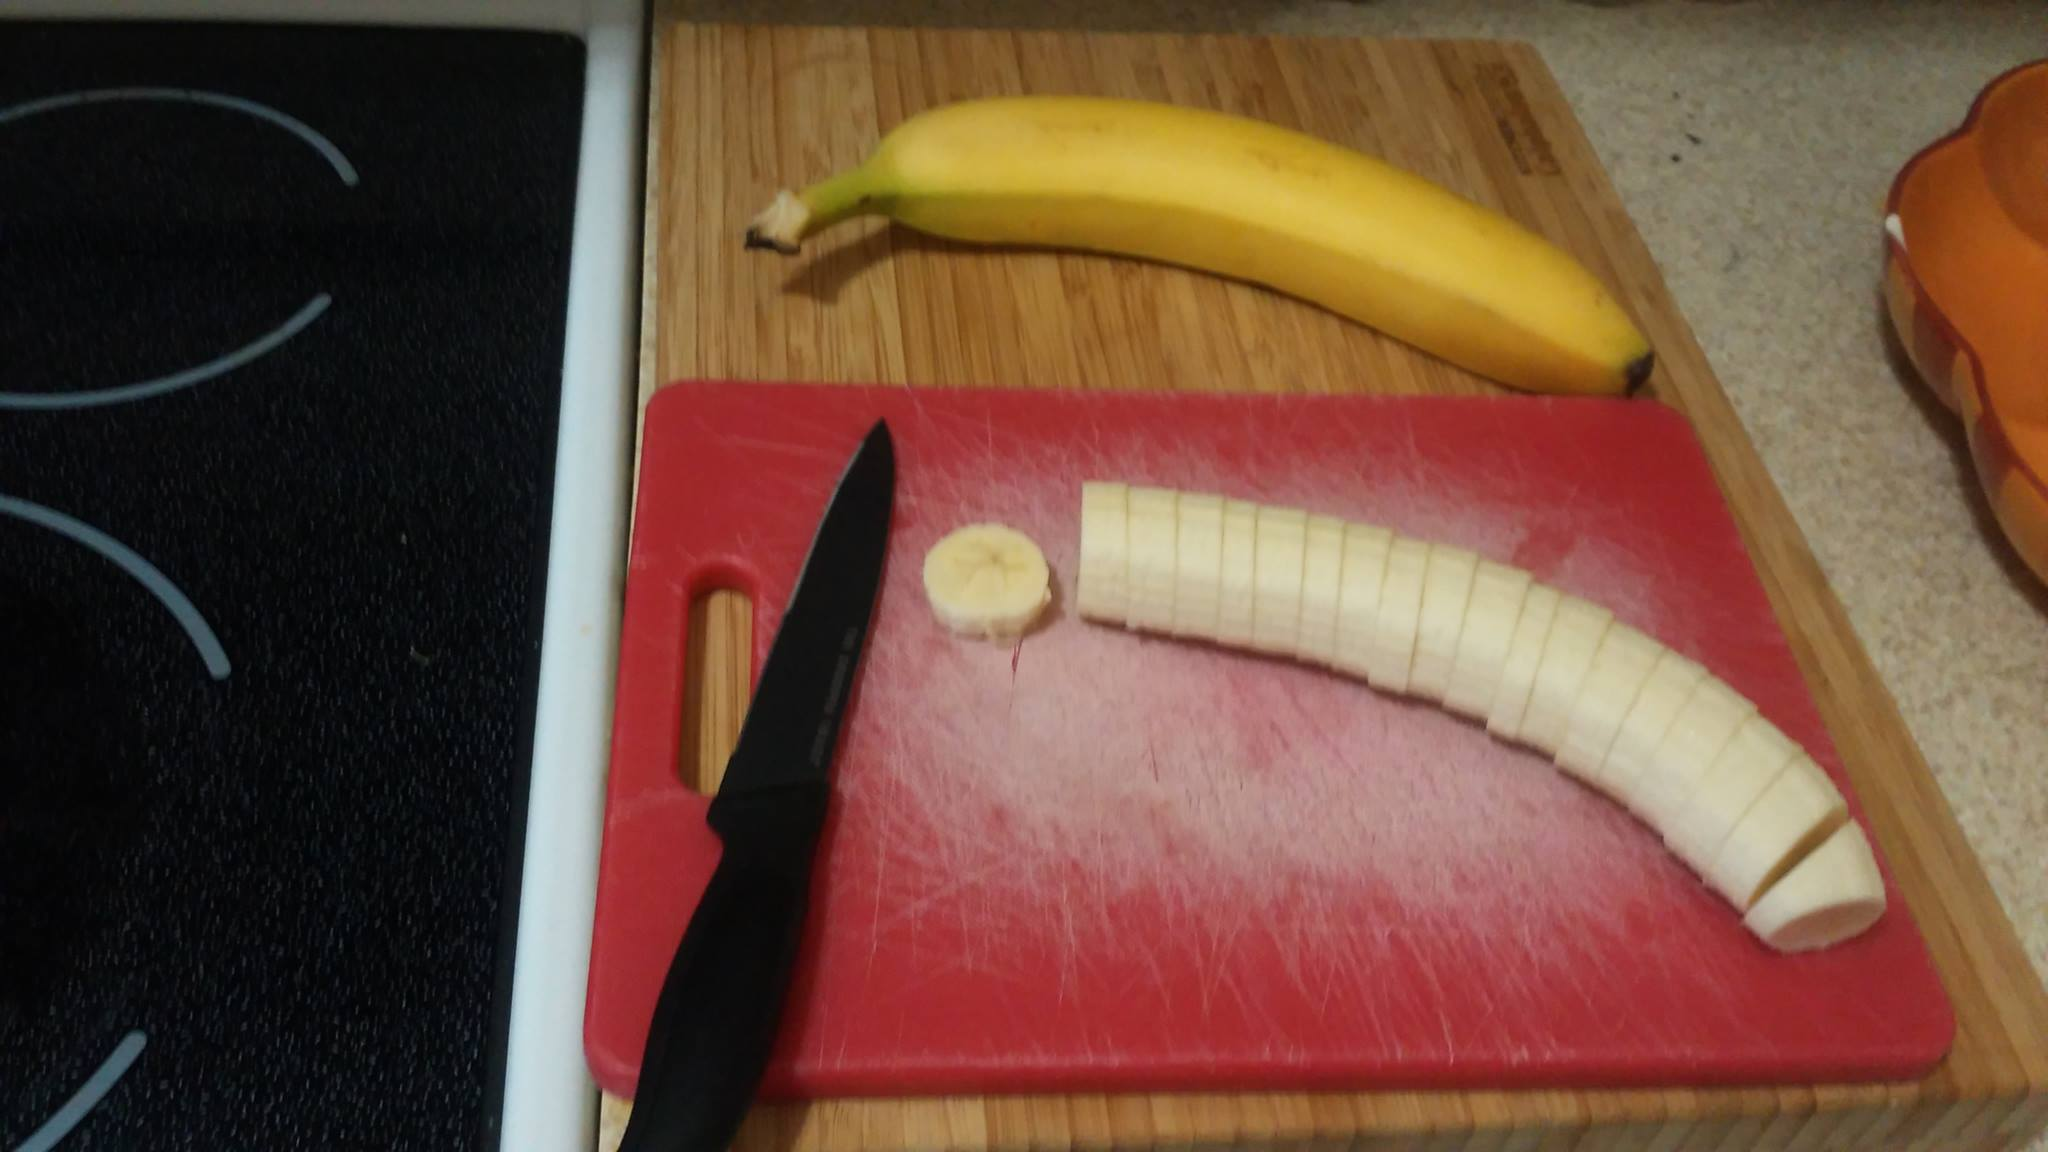 I start with cutting up two largish bananas...